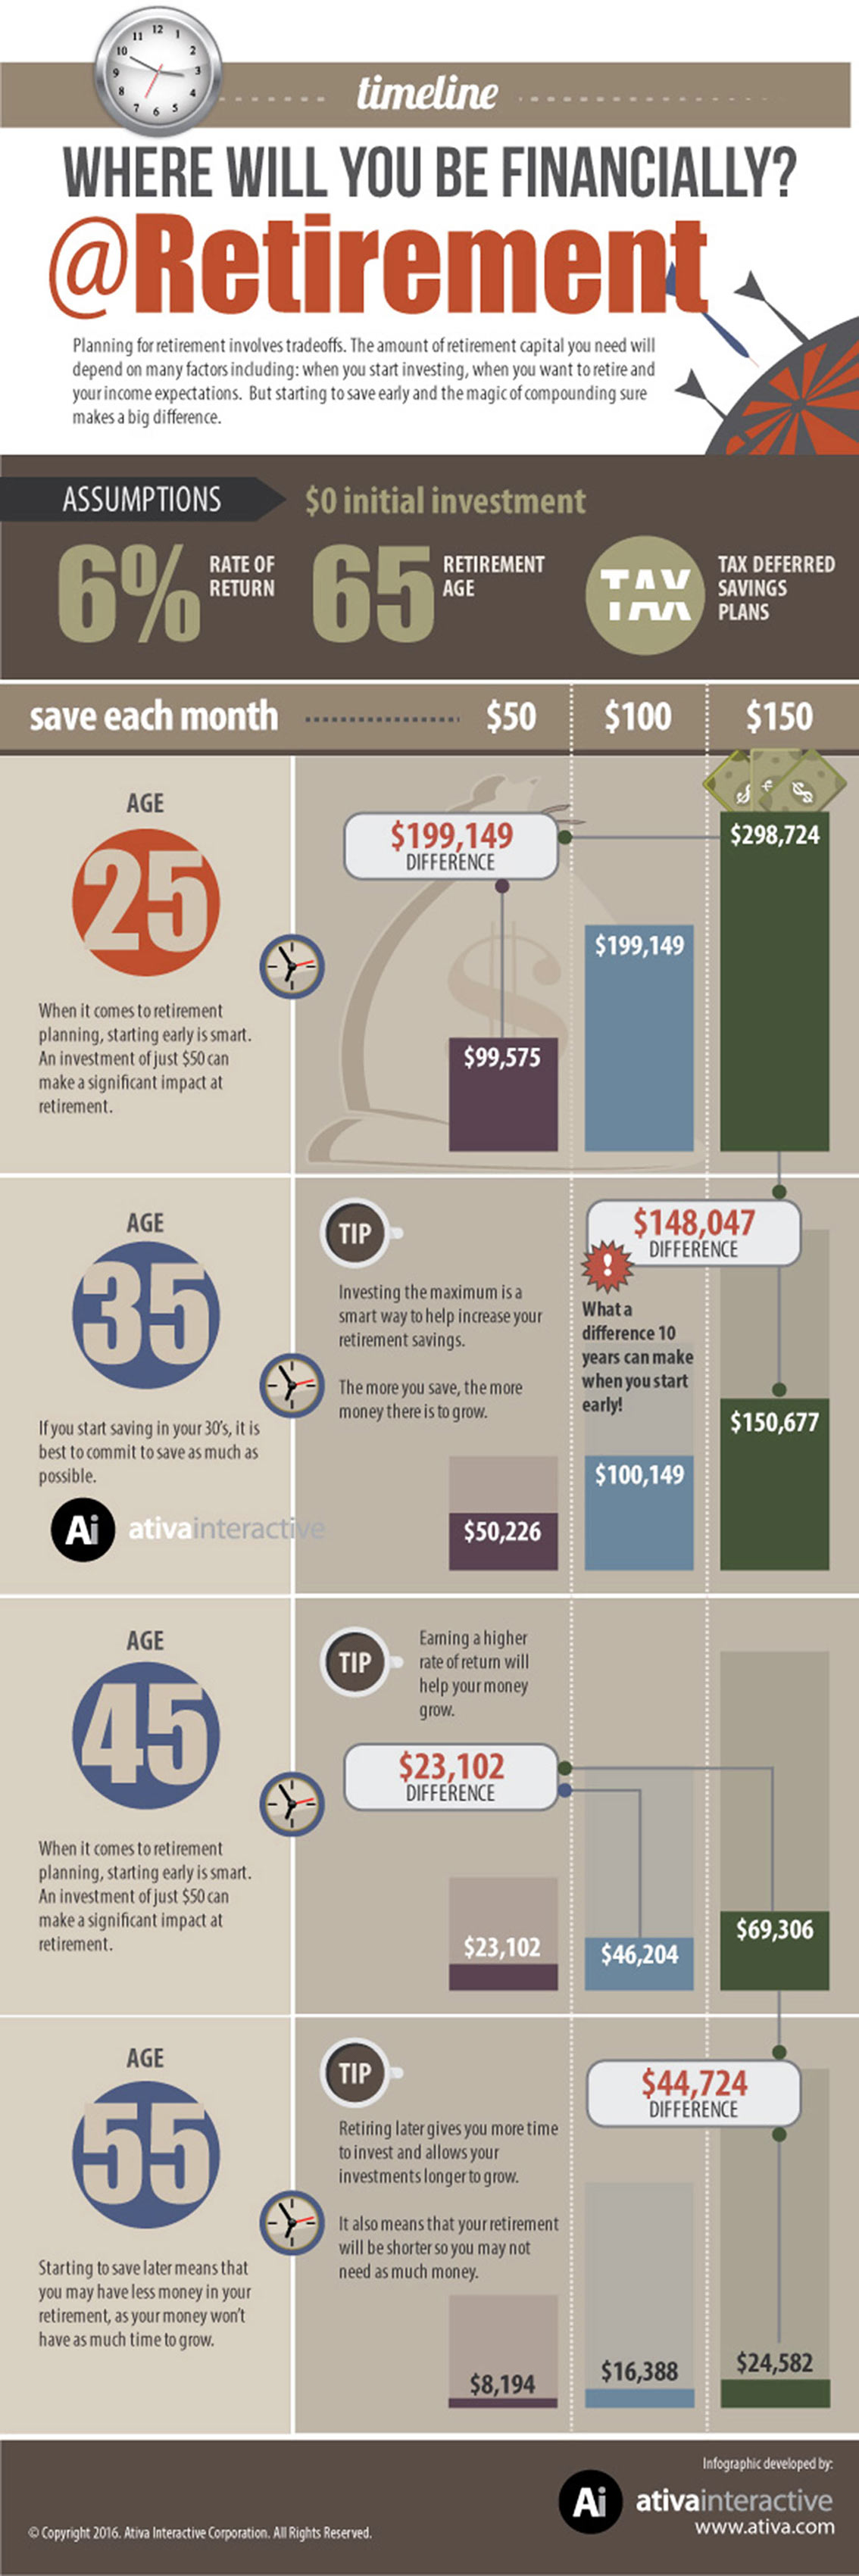 Where Will You Be Financially At Retirement Infographic